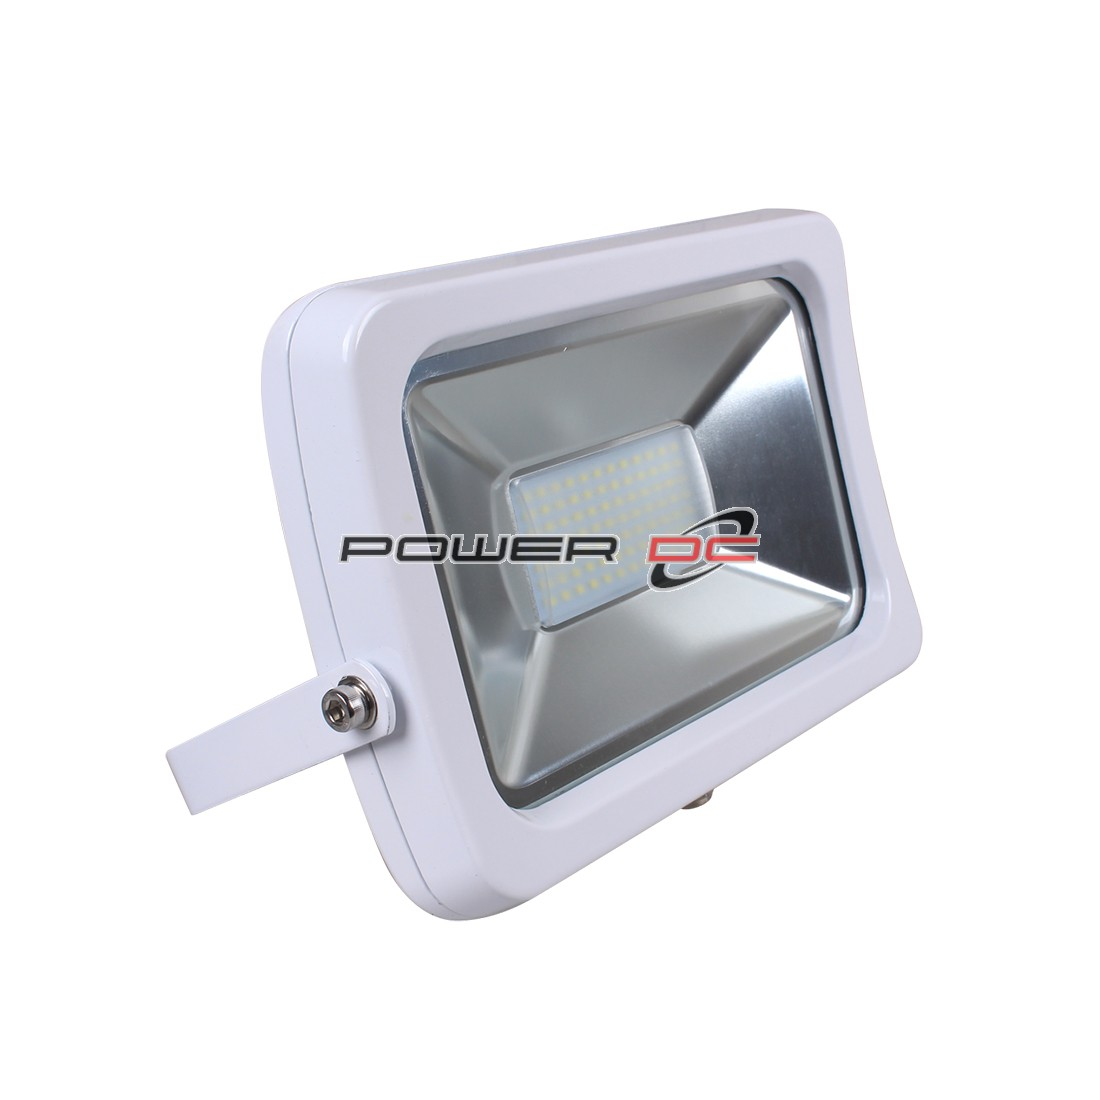 ULTRACHARGE WALL MOUNT LED FLOOD LIGHT 50WATT WHITE